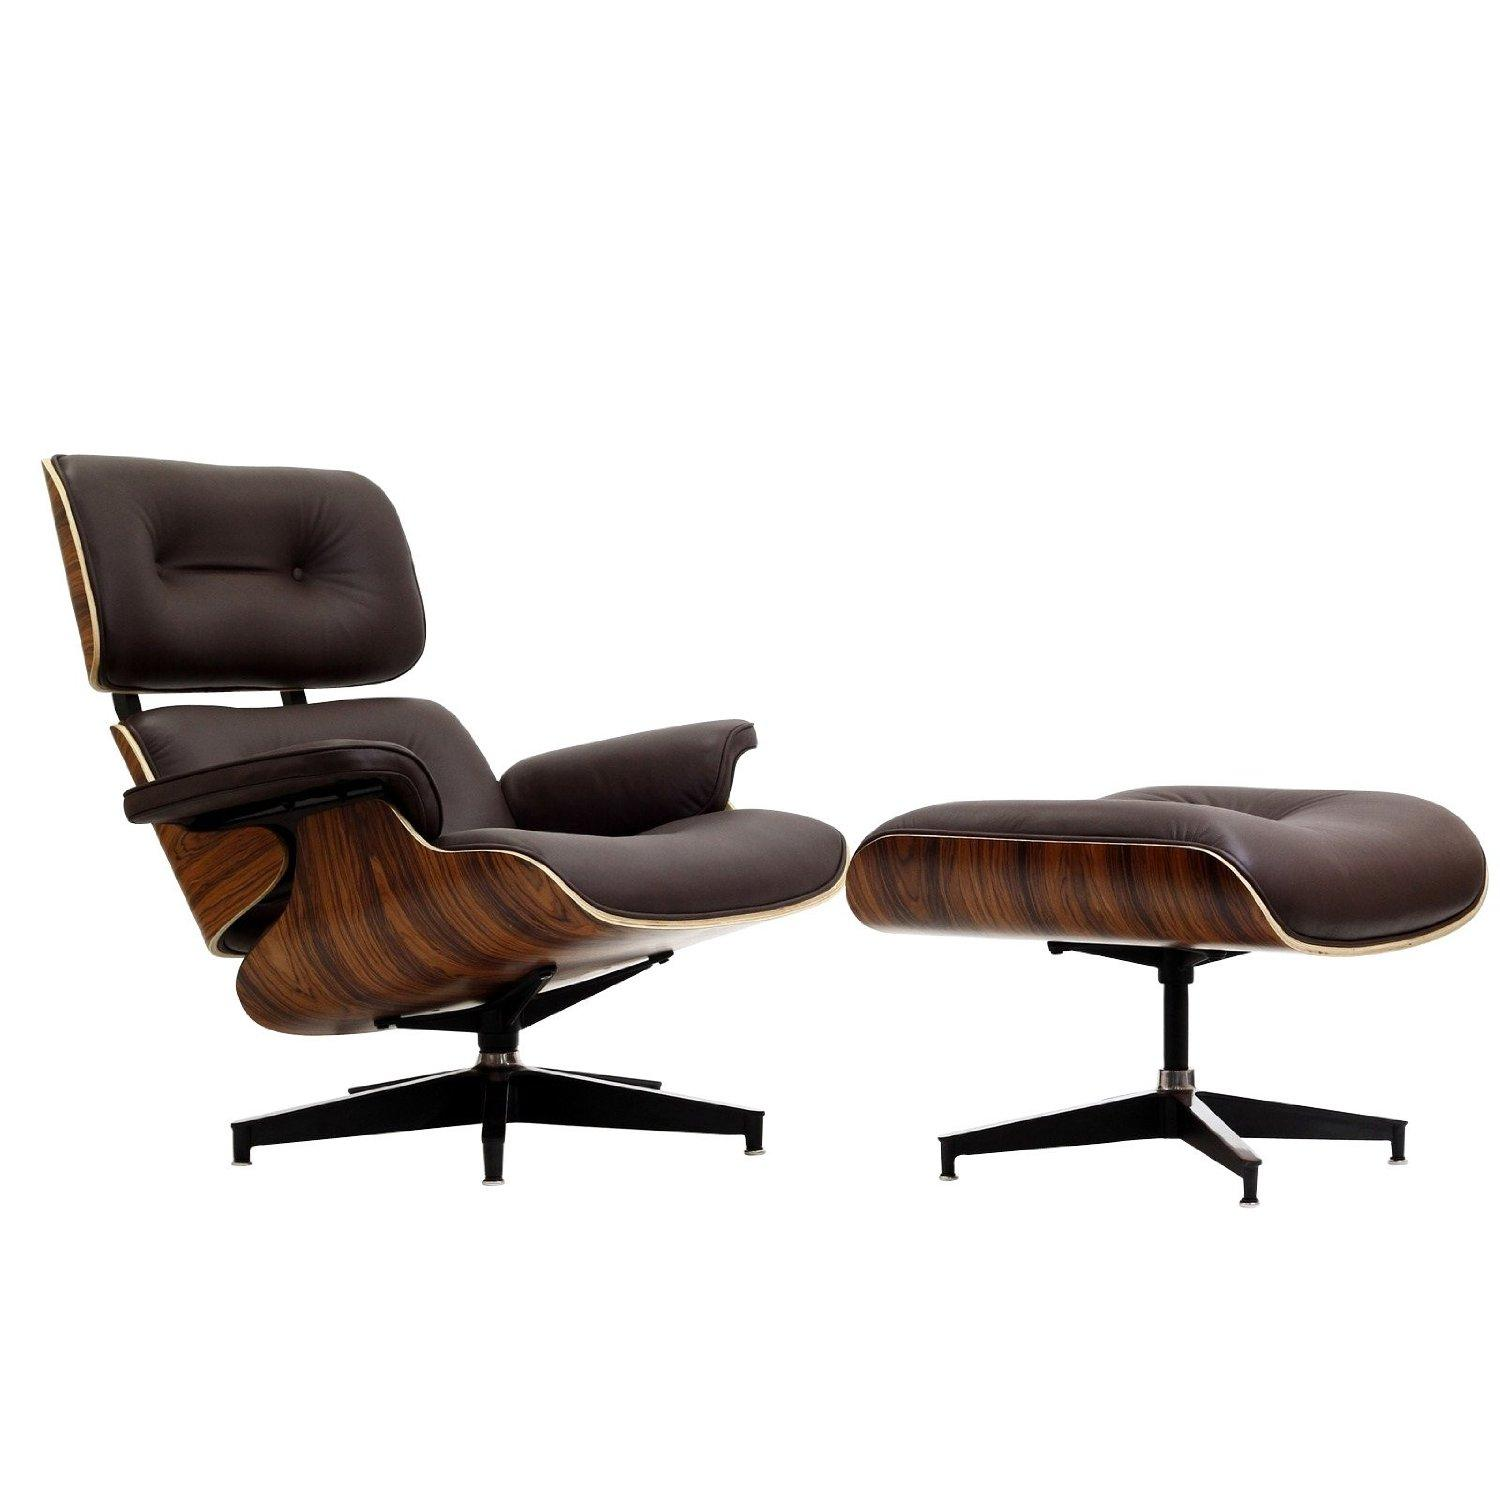 Ordinaire Eames, Mid Century, Mid Century, Modern, Eames Lounge, Classic,